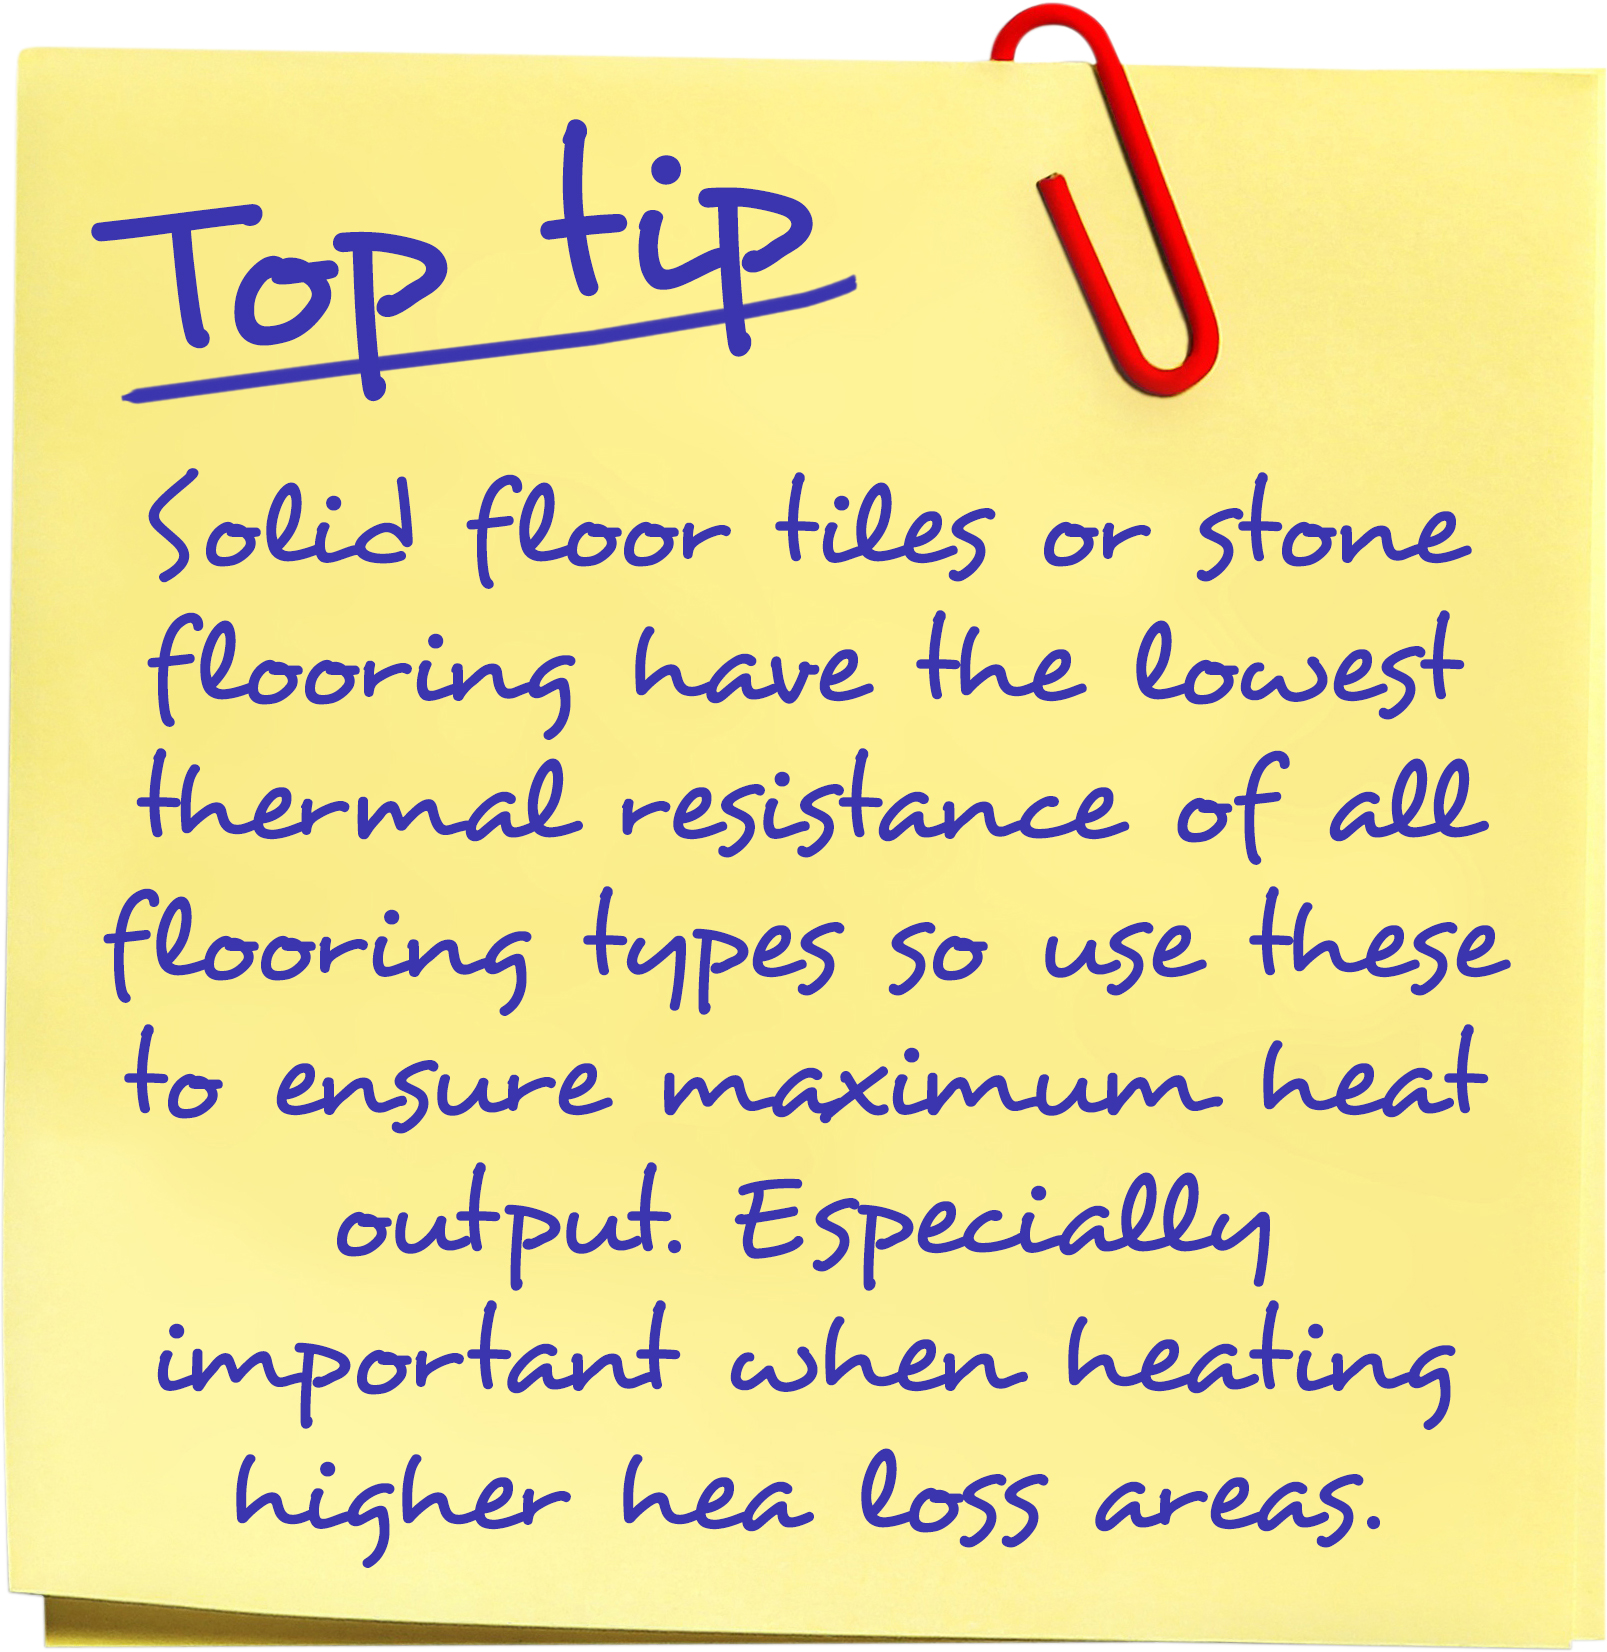 solid floor tiles or stone flooring have the lowest thermal resistance of all flooring types so use these to ensure maximum heat output. Especially important when heating higher heat loss areas.